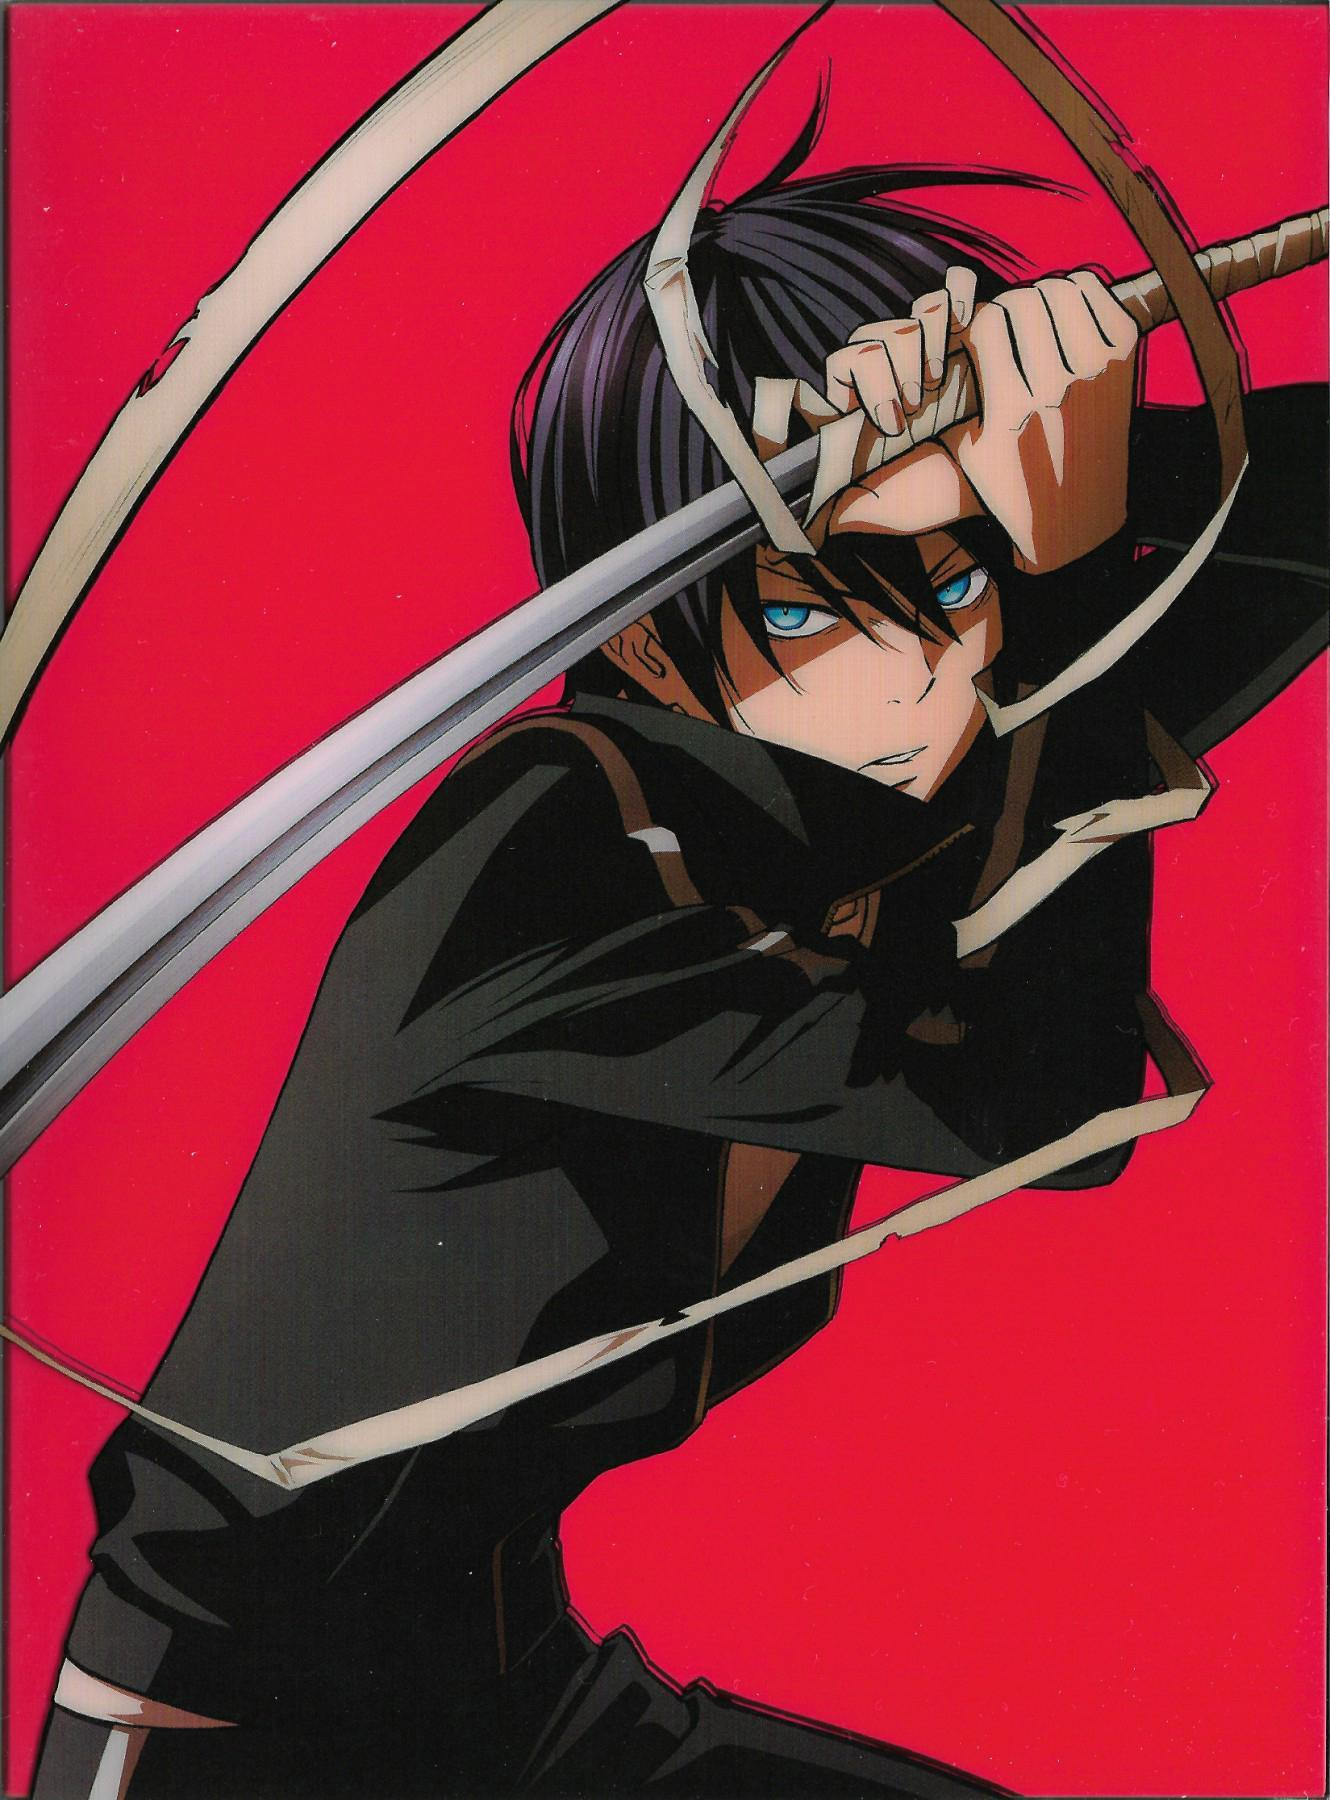 Noragami Wallpaper Anime For Android Apk Download